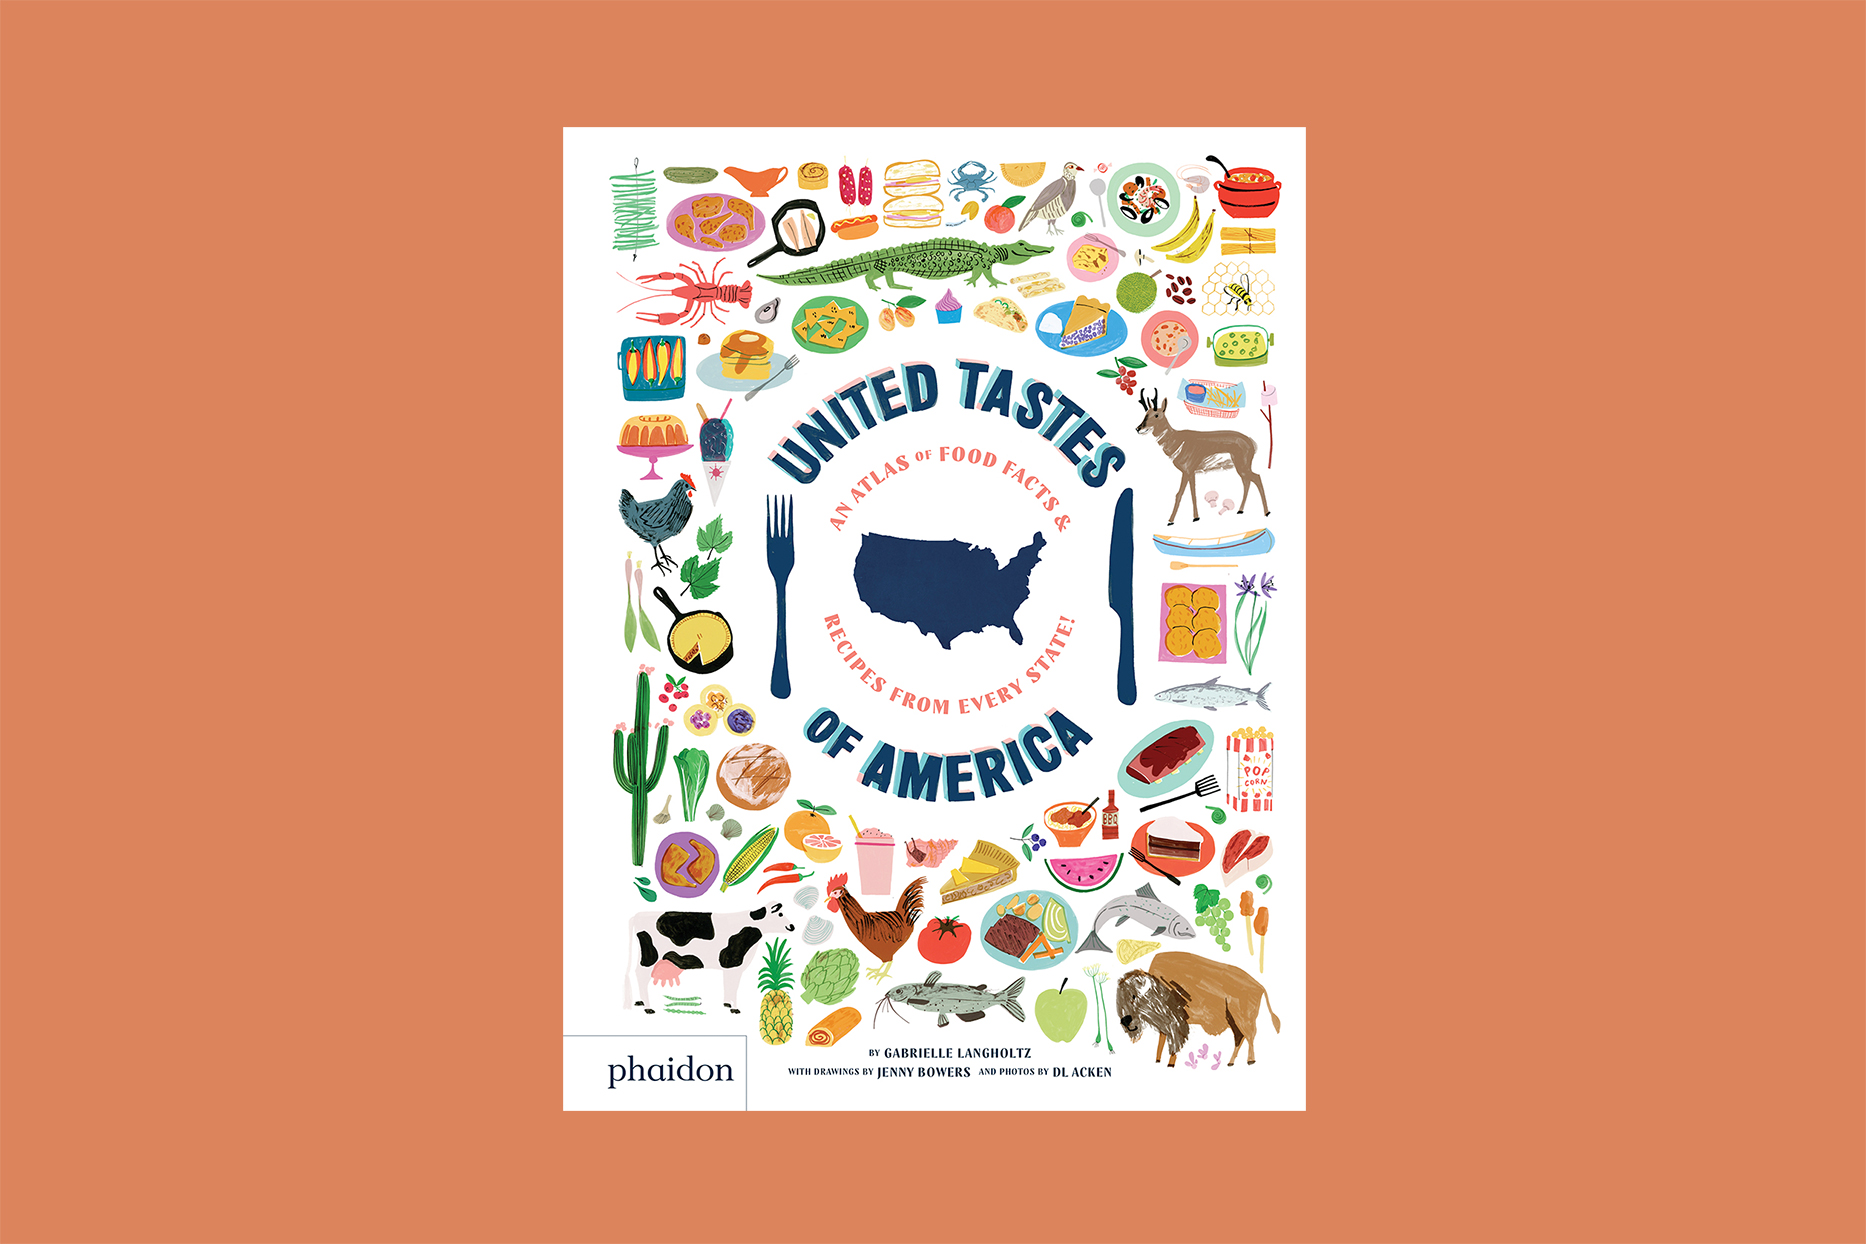 united tastes of america cookbook